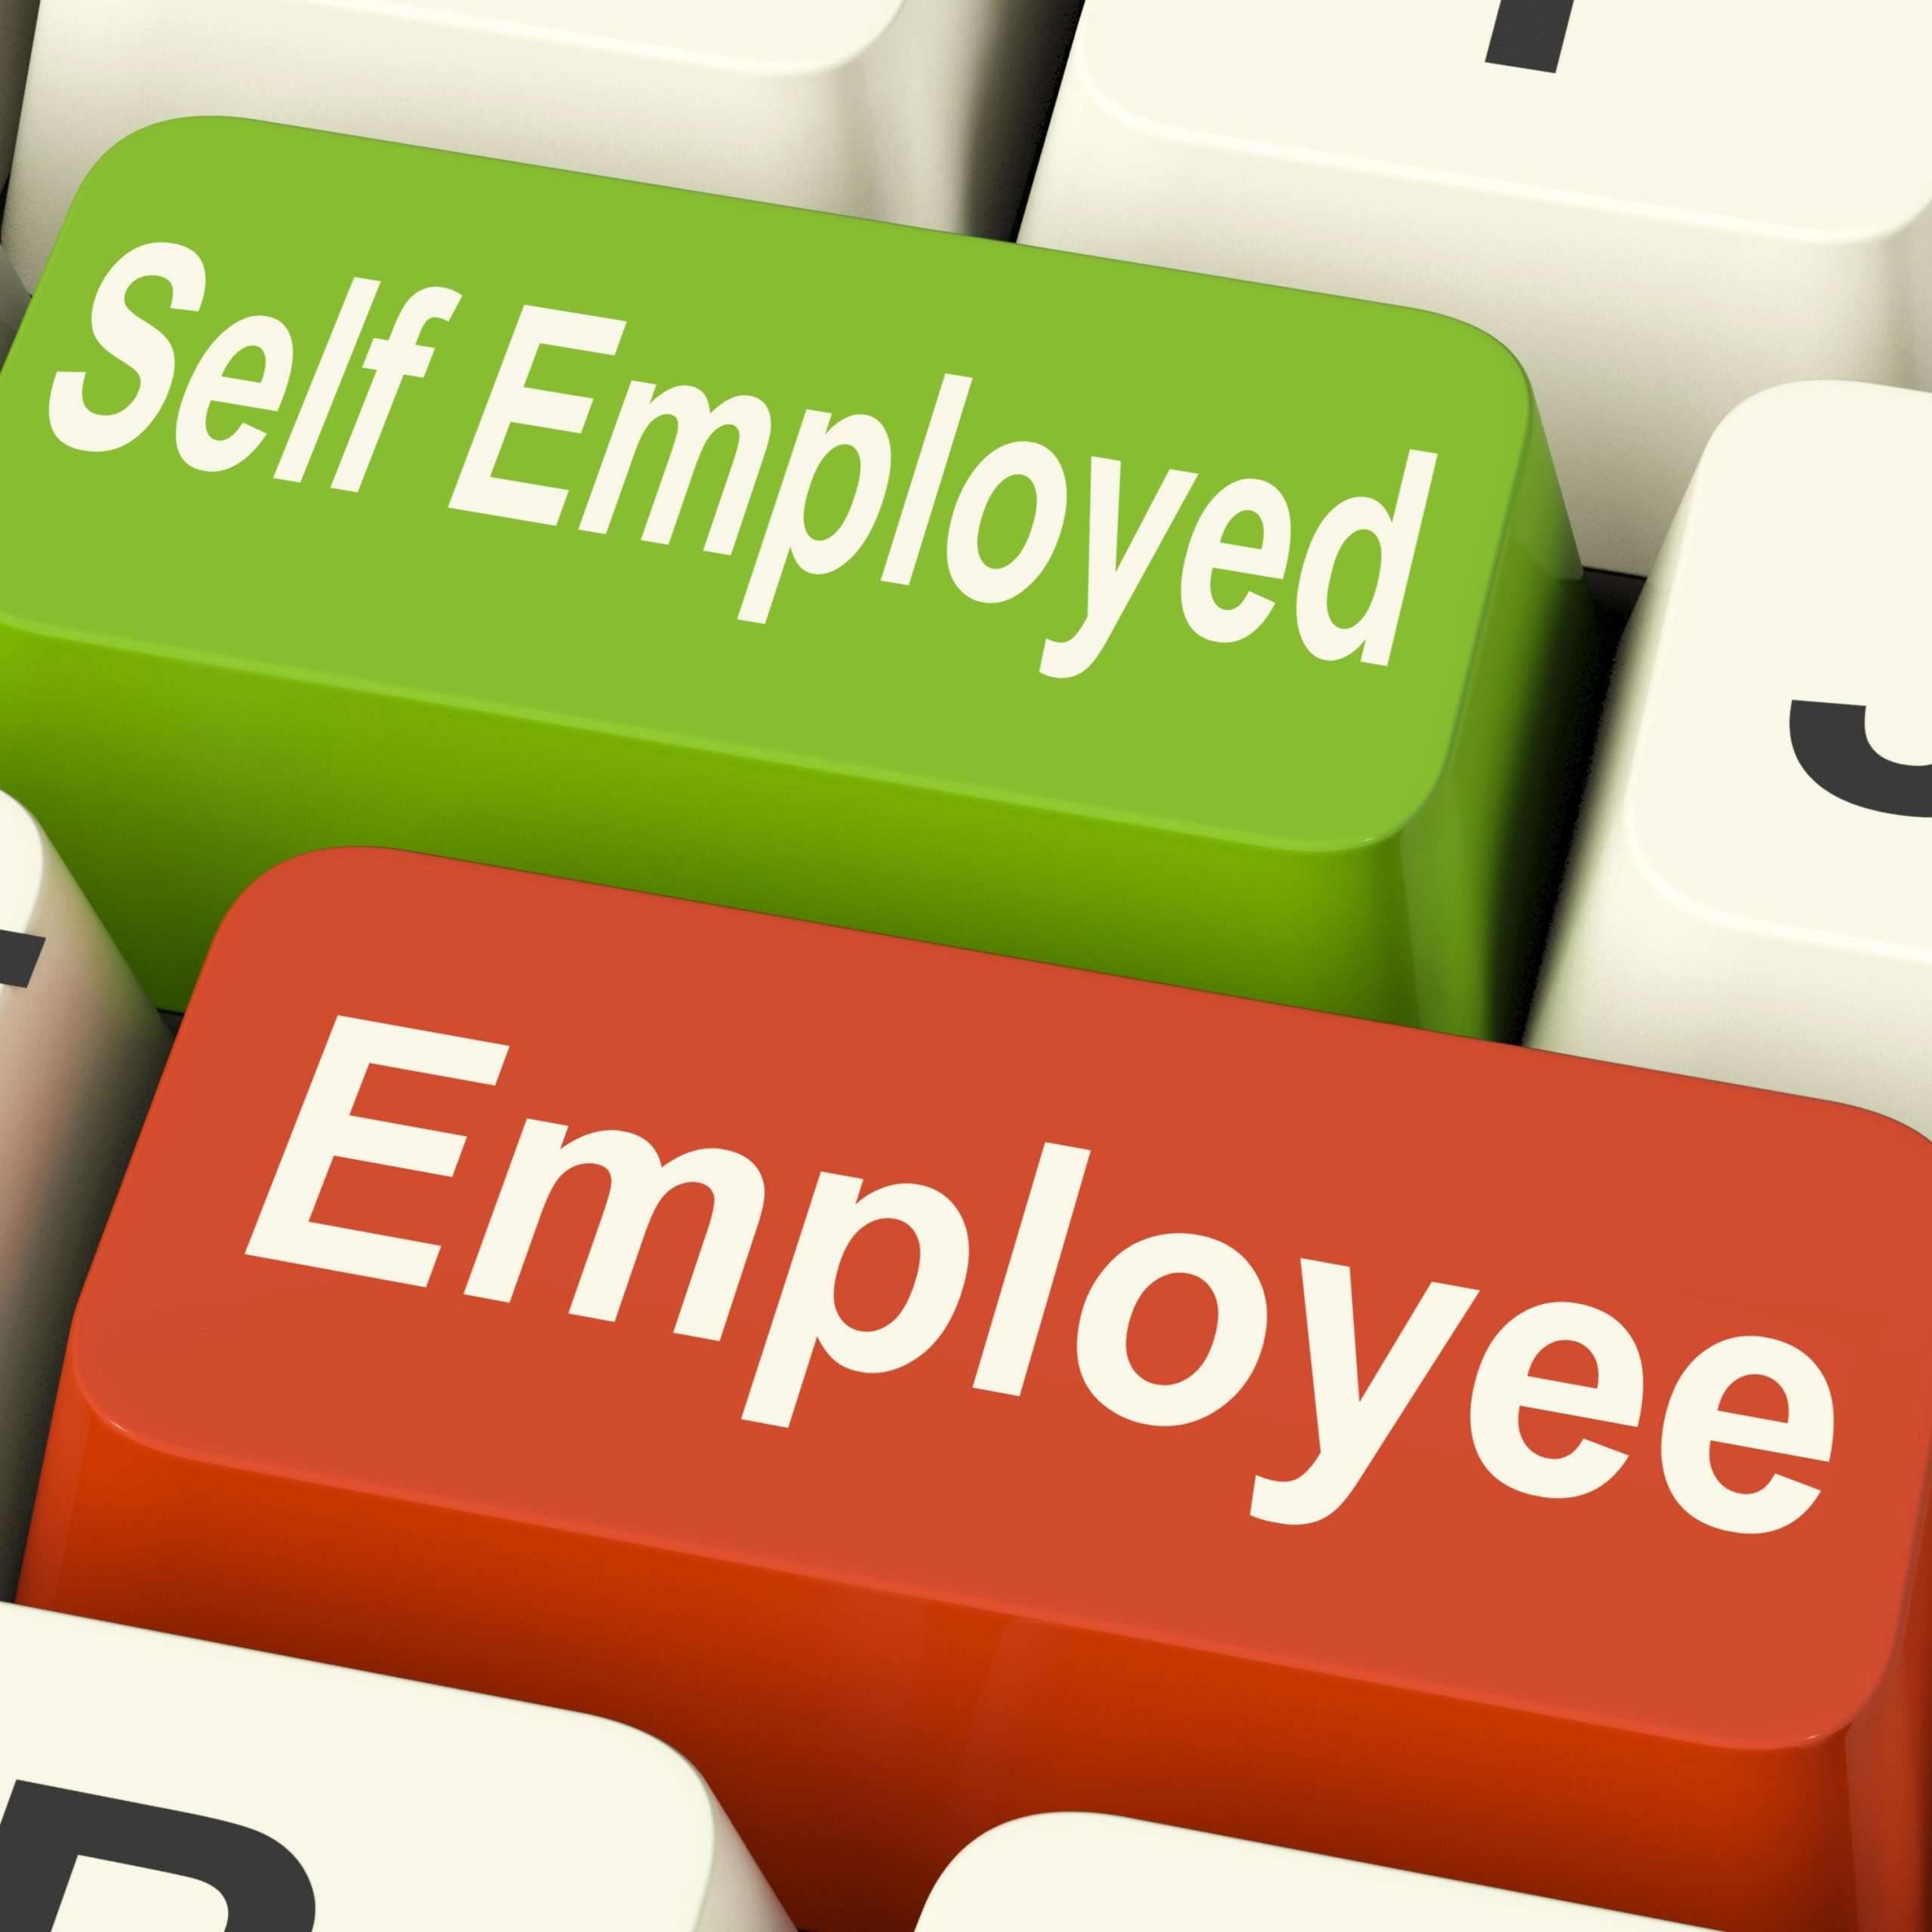 Is it better to be self-employed or employed?